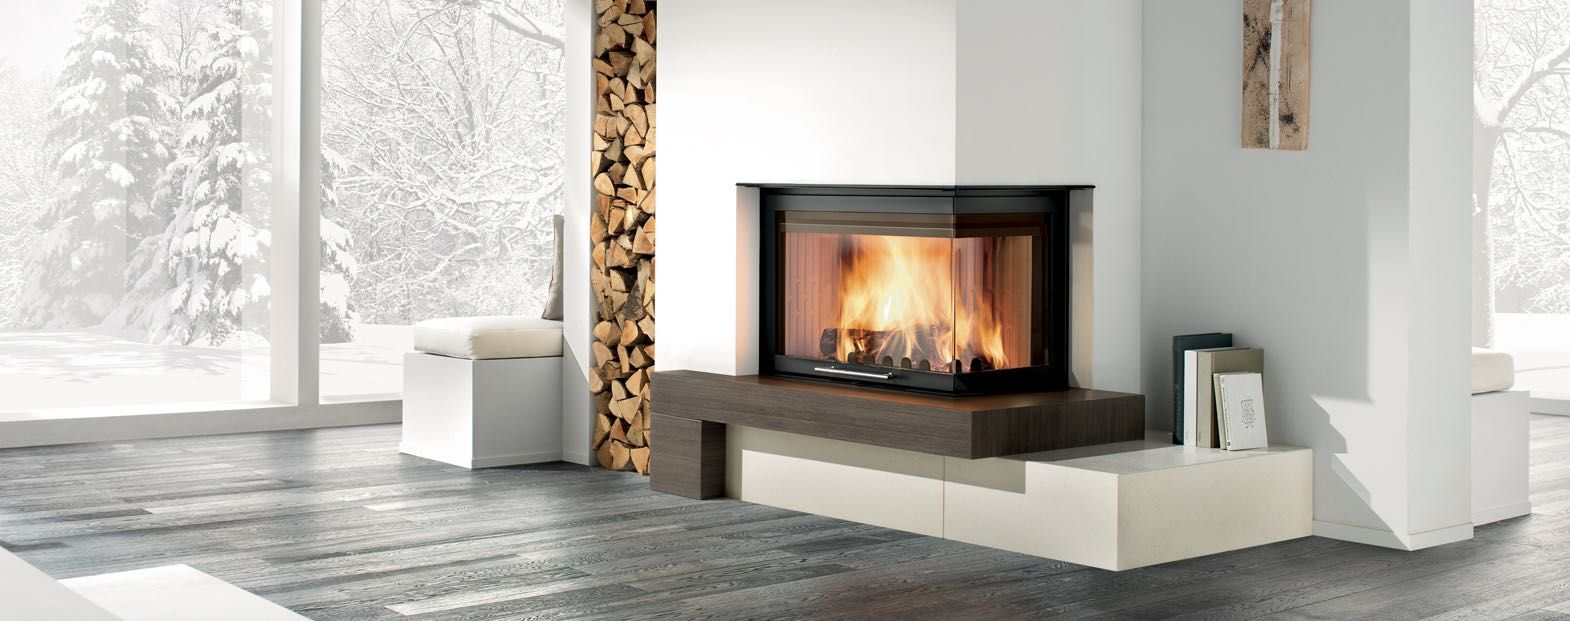 Caminetto In English Wood Fireplaces Caminetti Montegrappa